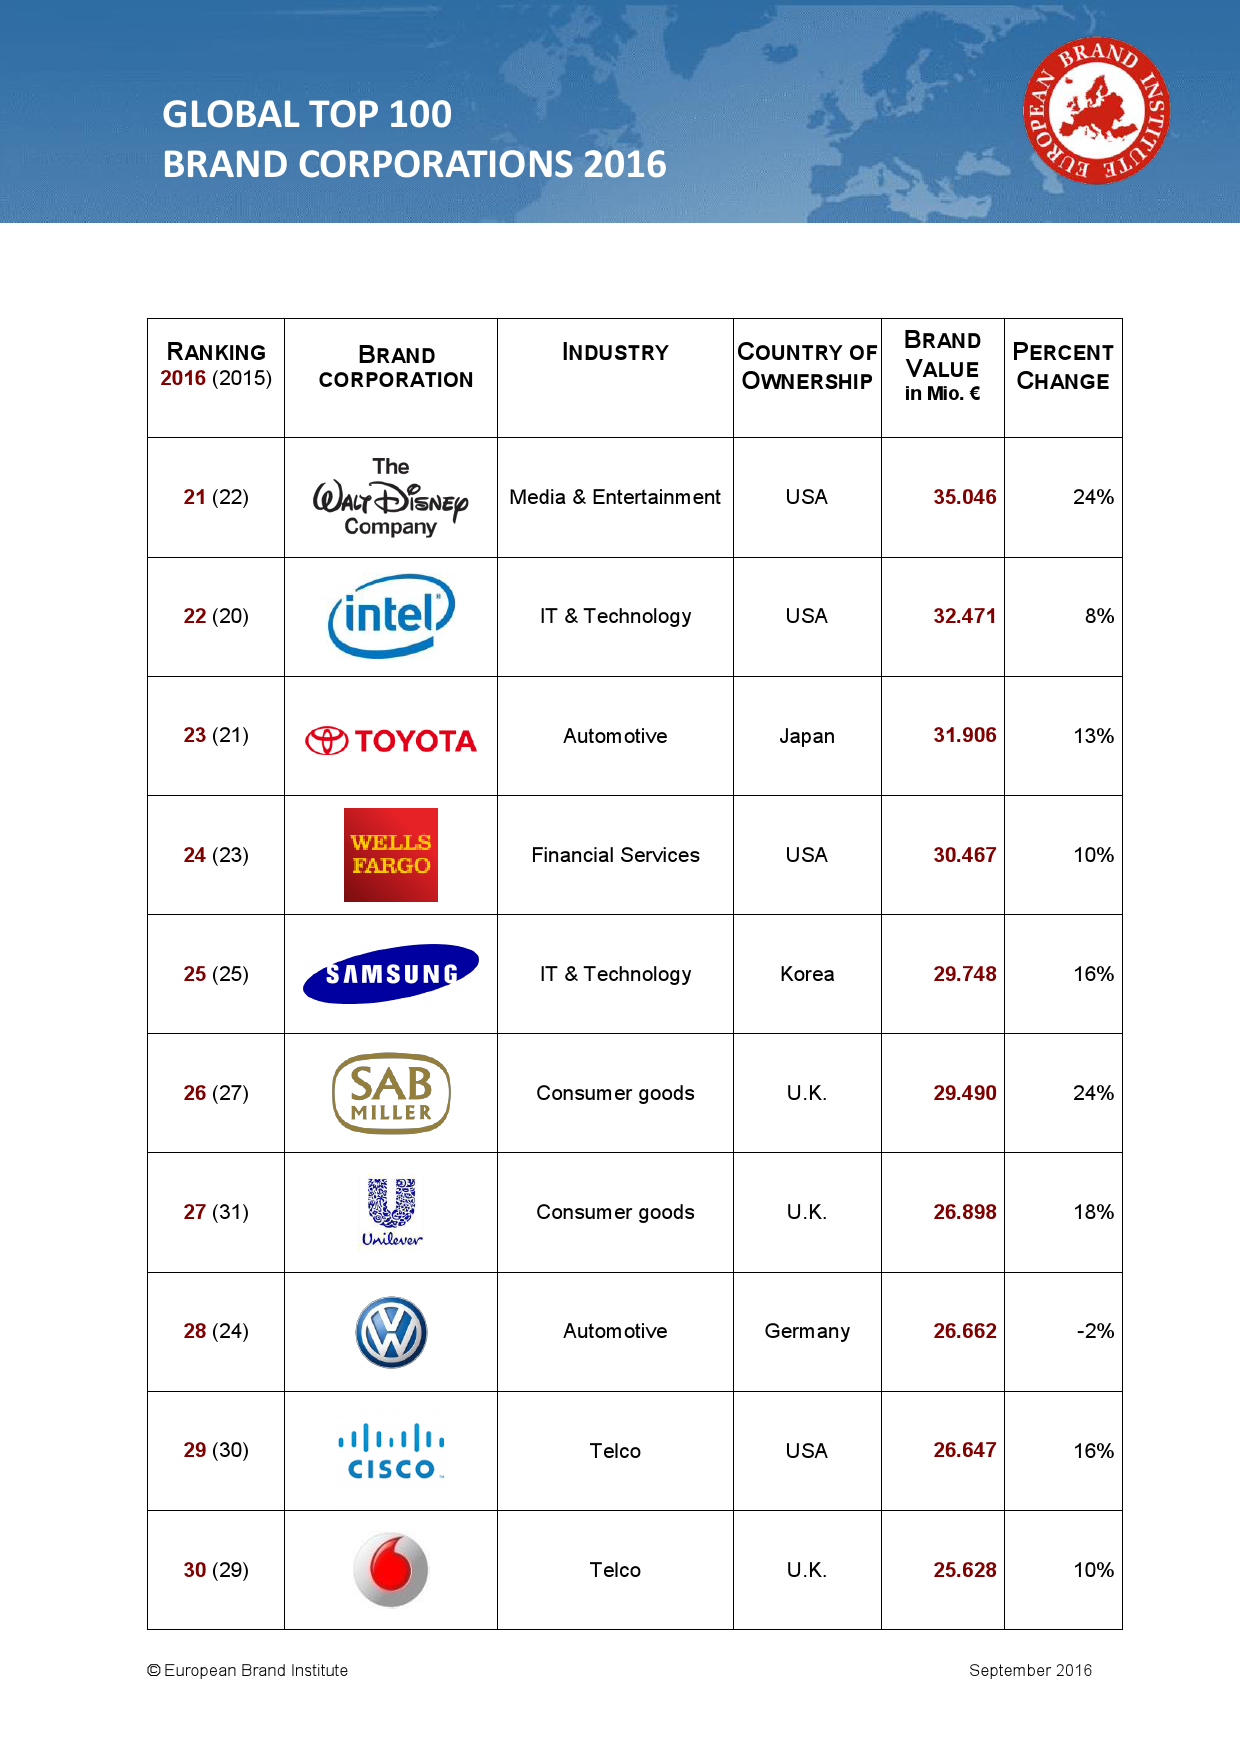 GLOBAL TOP 100 BRAND CORPORATIONS 2016_000003